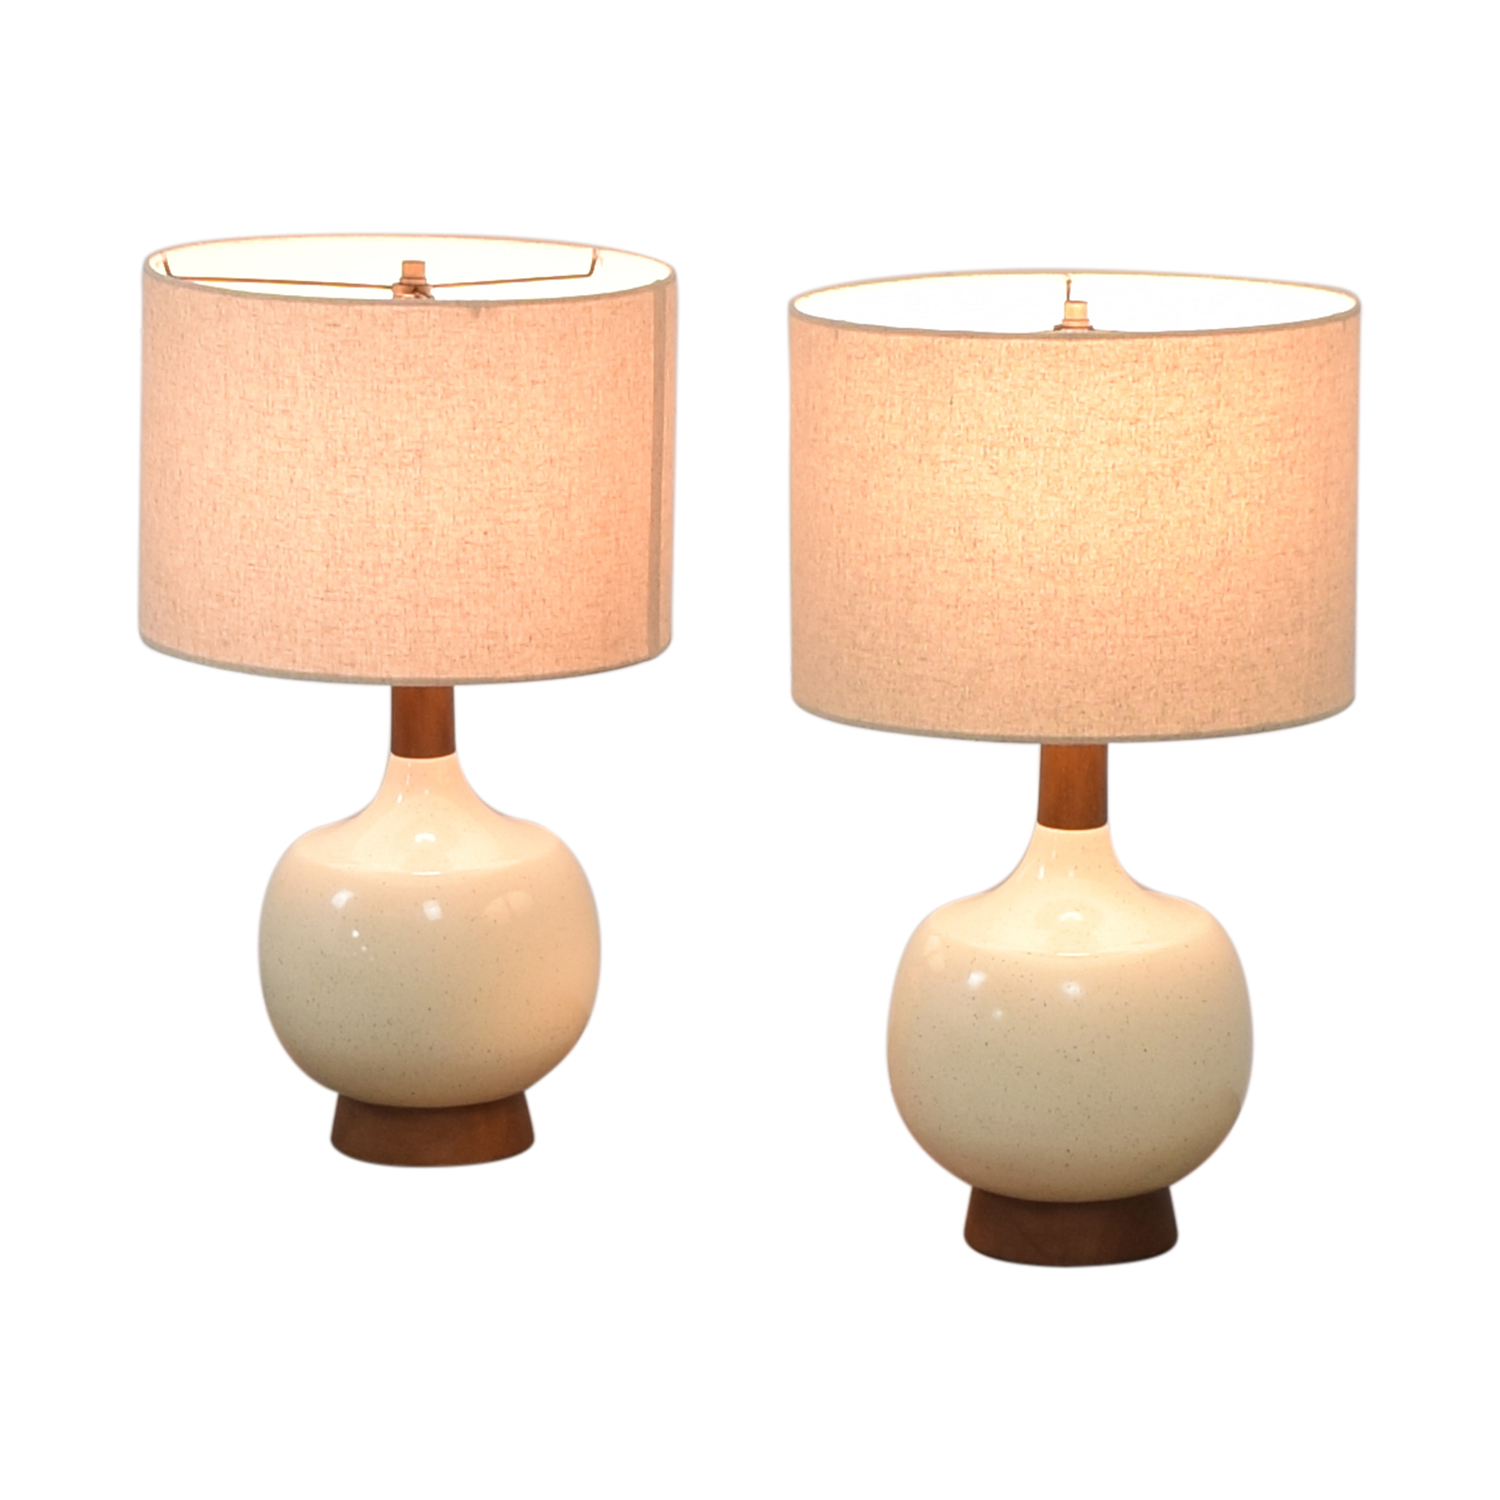 West Elm West Elm Modernist Table Lamps Lamps